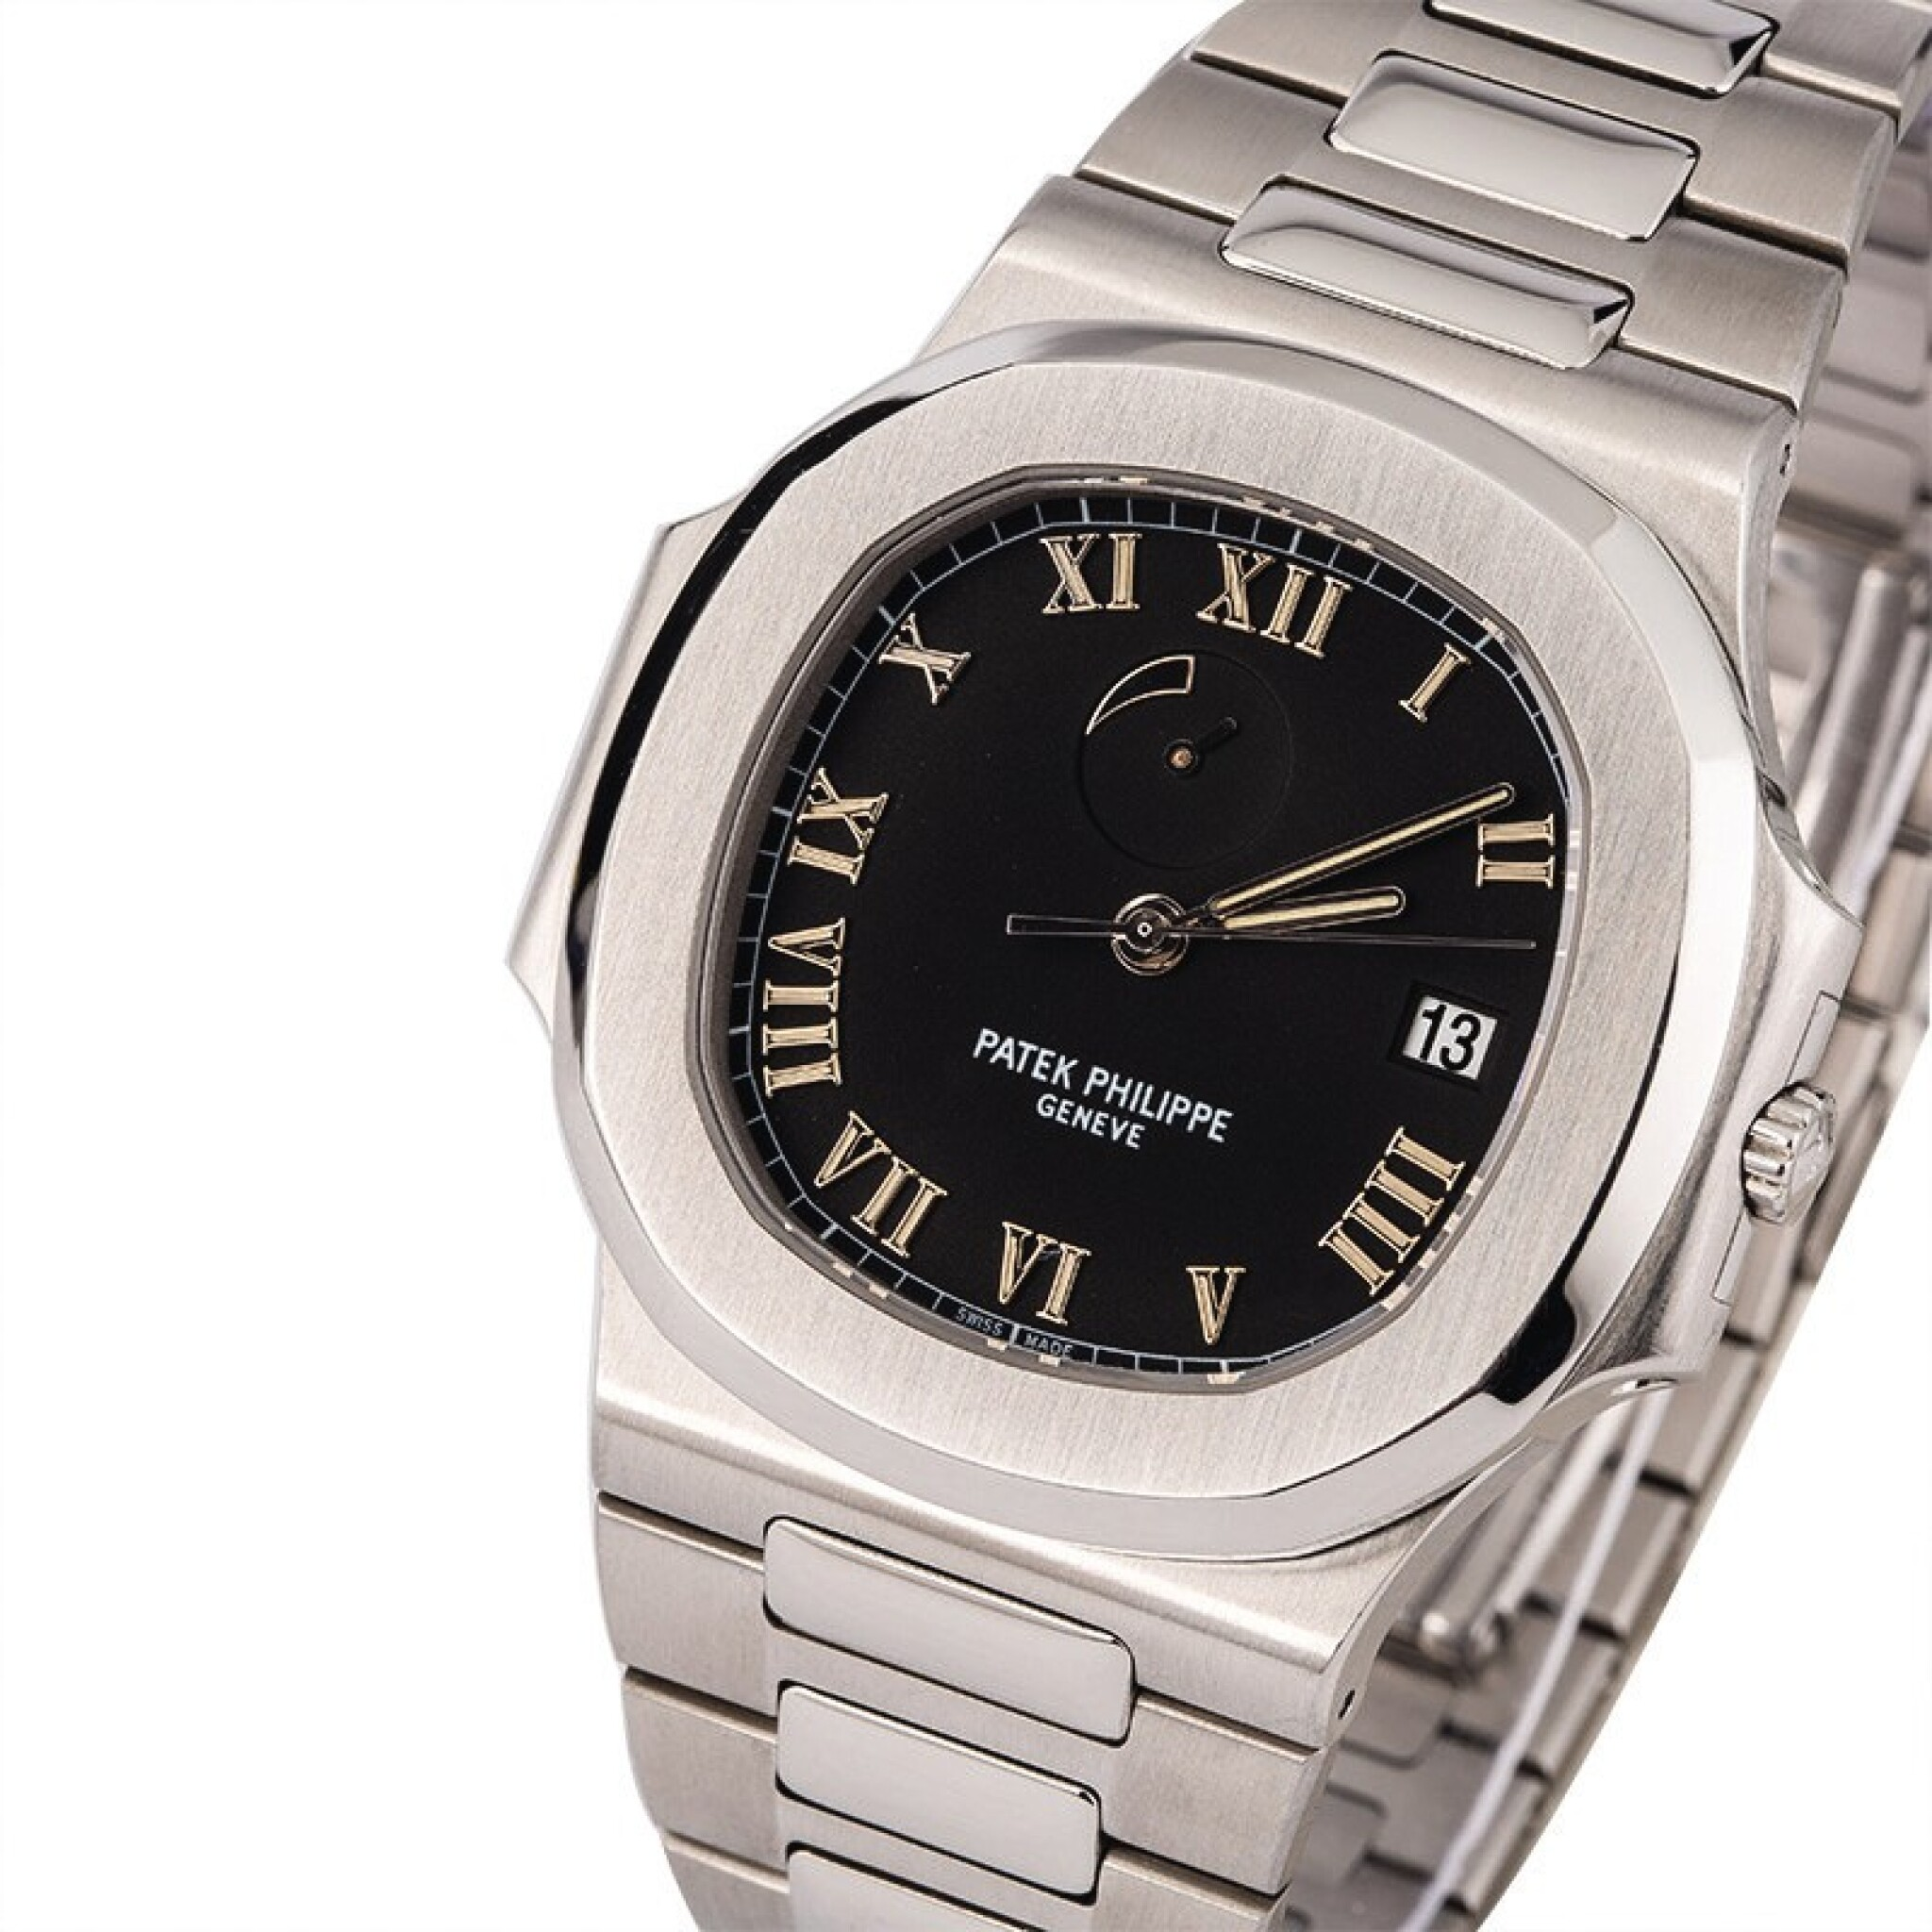 View 1 of Lot 17. PATEK PHILIPPE | Nautilus, Ref. 3710/1A, A Stainless Steel Wristwatch with Integrated Bracelet and Power Reserve Indicator, Circa early 2000s.